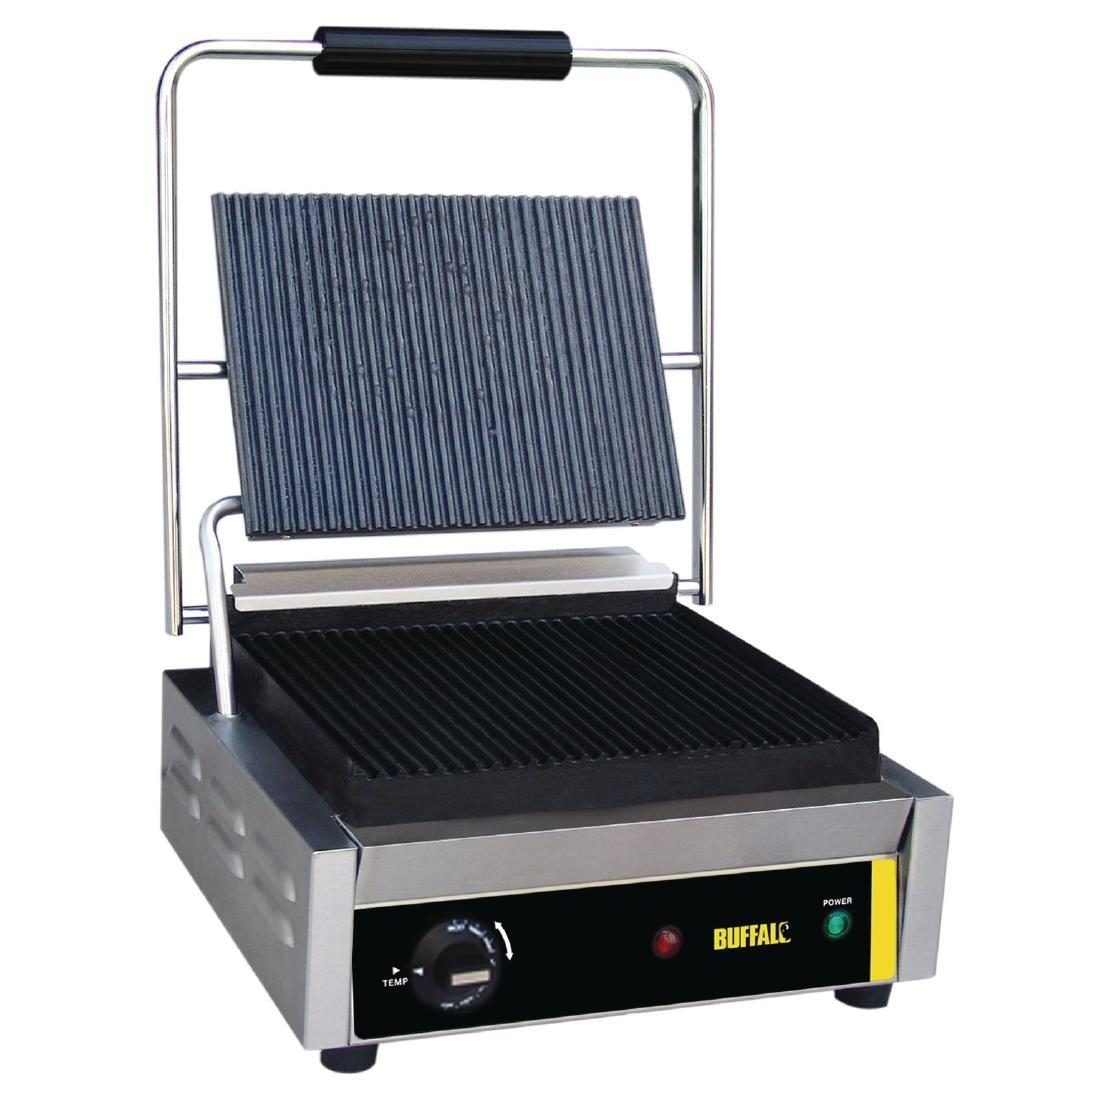 DM903 - Buffalo Bistro Contact Grill Large Ribbed - DM903